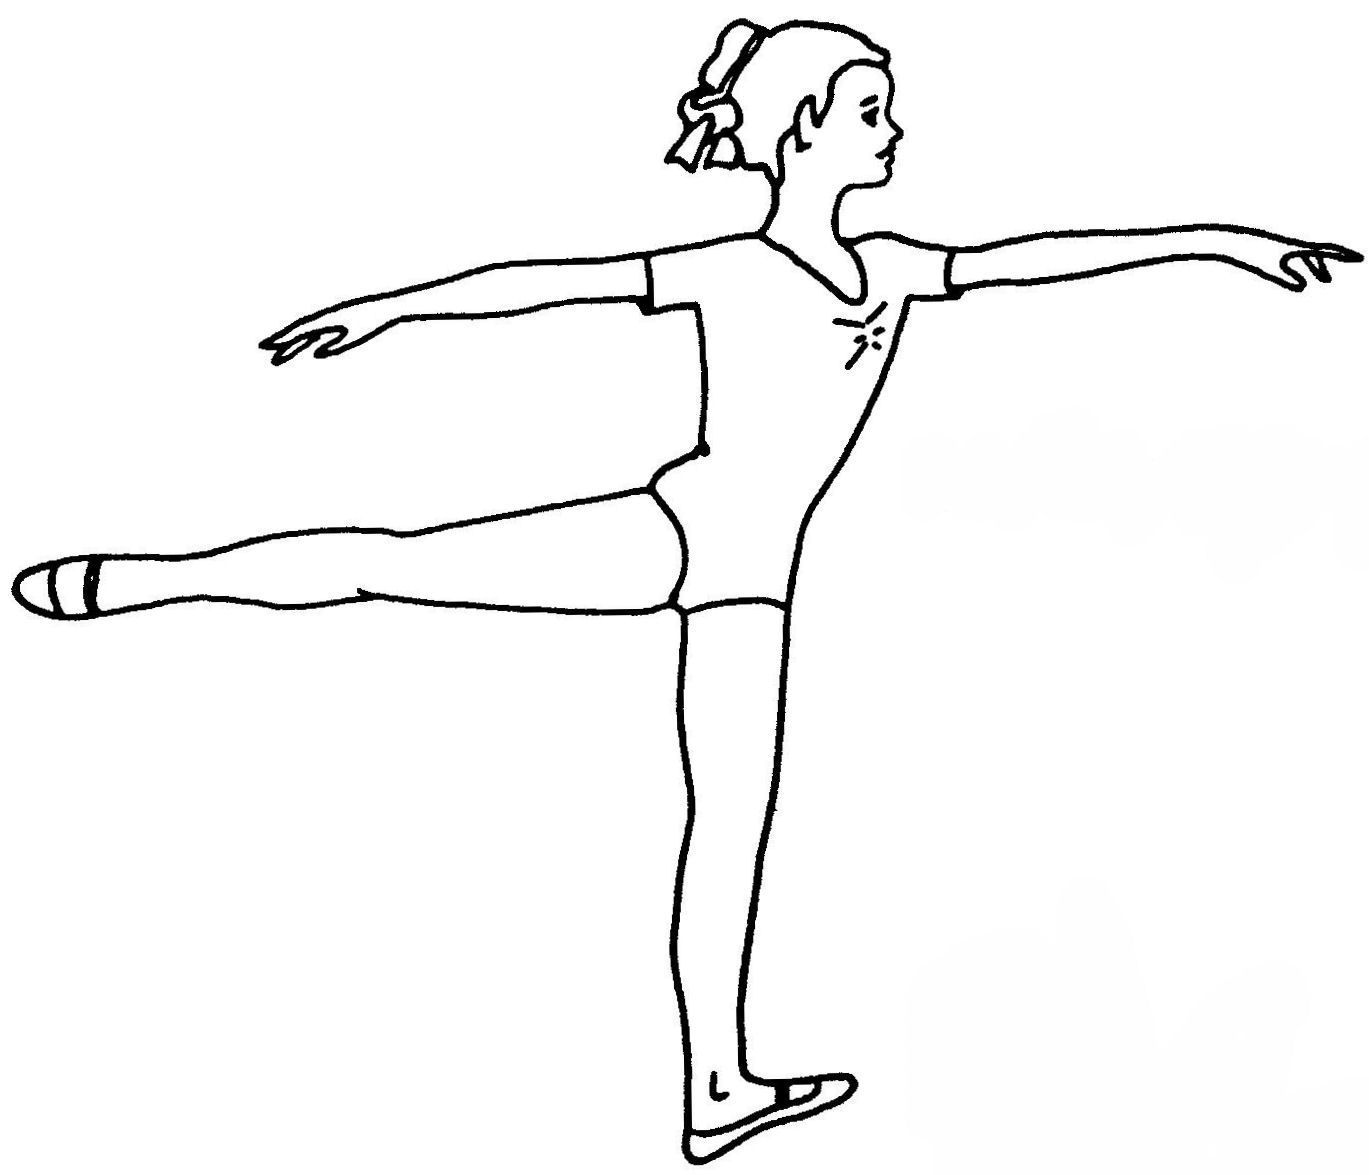 1st arabesque | coloring pages | Pinterest | Dancing, Dance teacher ...